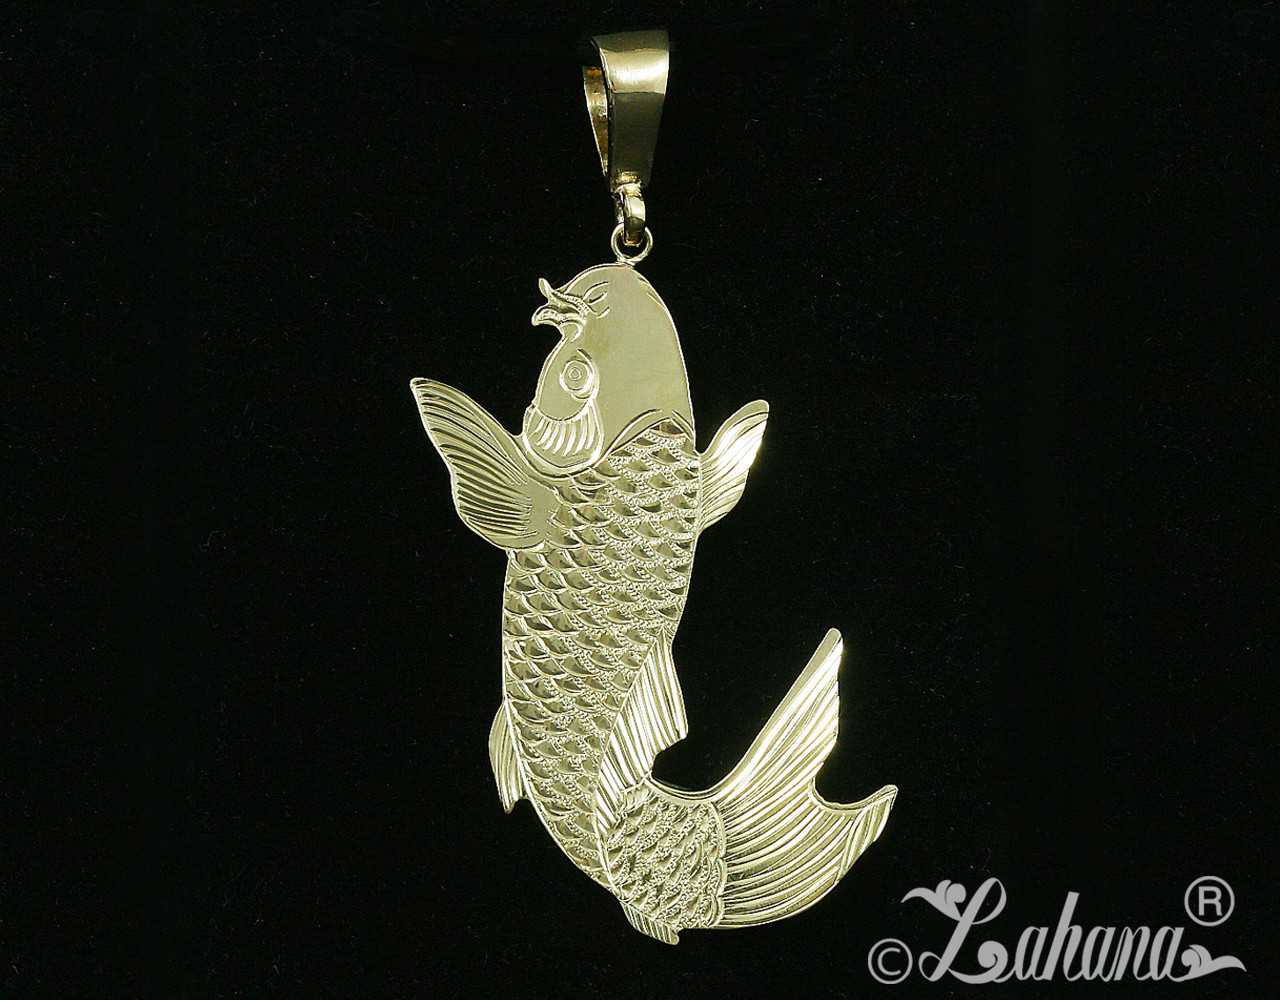 metallic in alexander gallery lyst skull koi necklace pendant silver product fish jewelry mcqueen